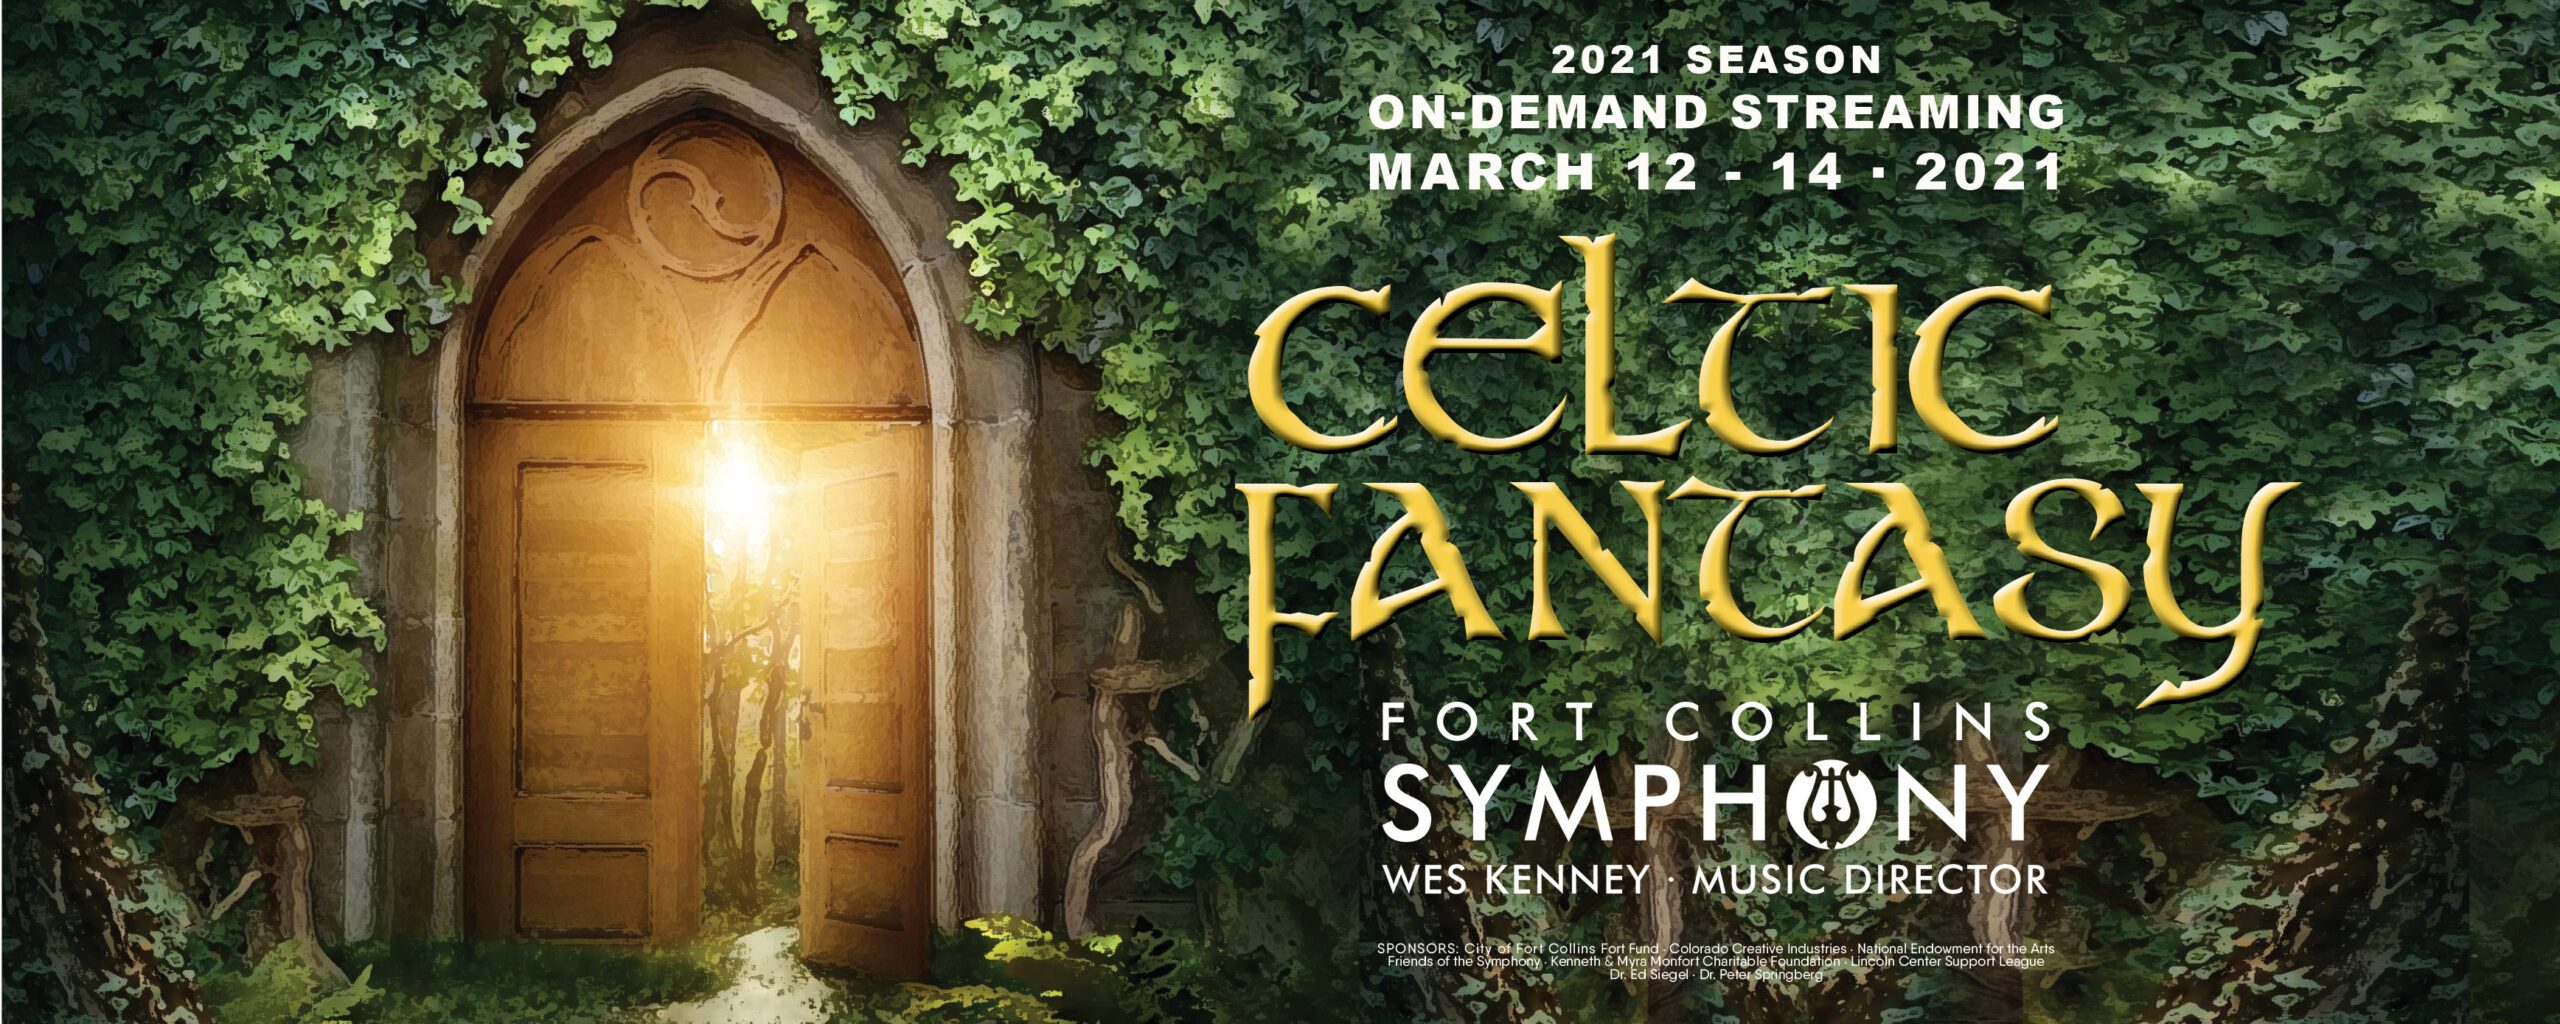 Celtic Fantasy Concert Header